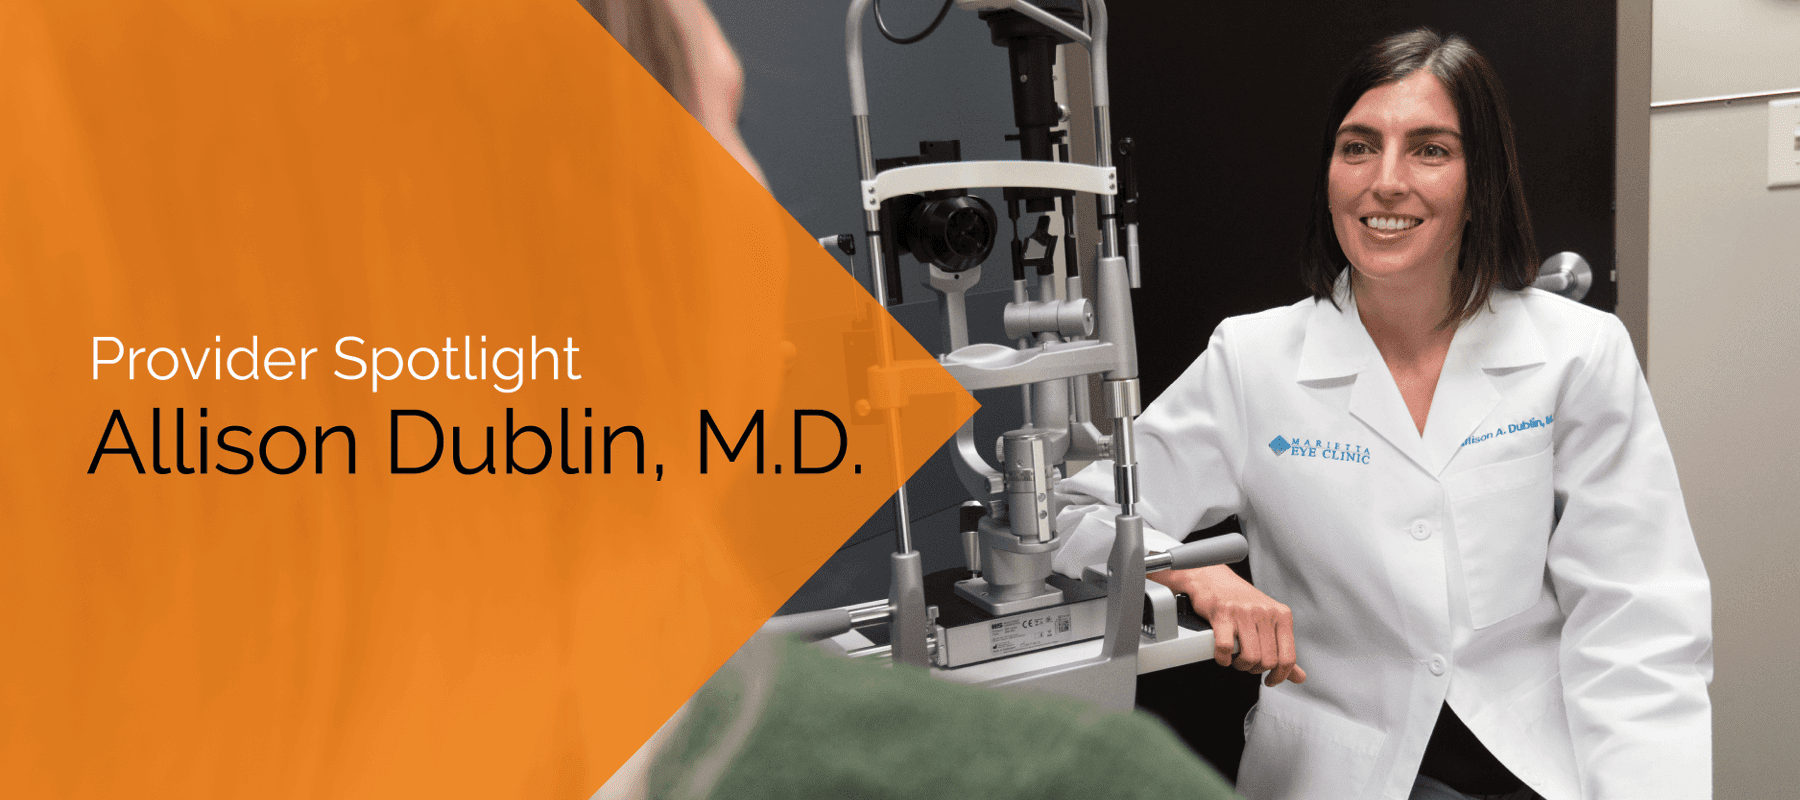 Allison Dublin, M.D. is an ophthalmologist, cataract surgeon, and glaucoma specialist at the Marietta Eye Clinic.